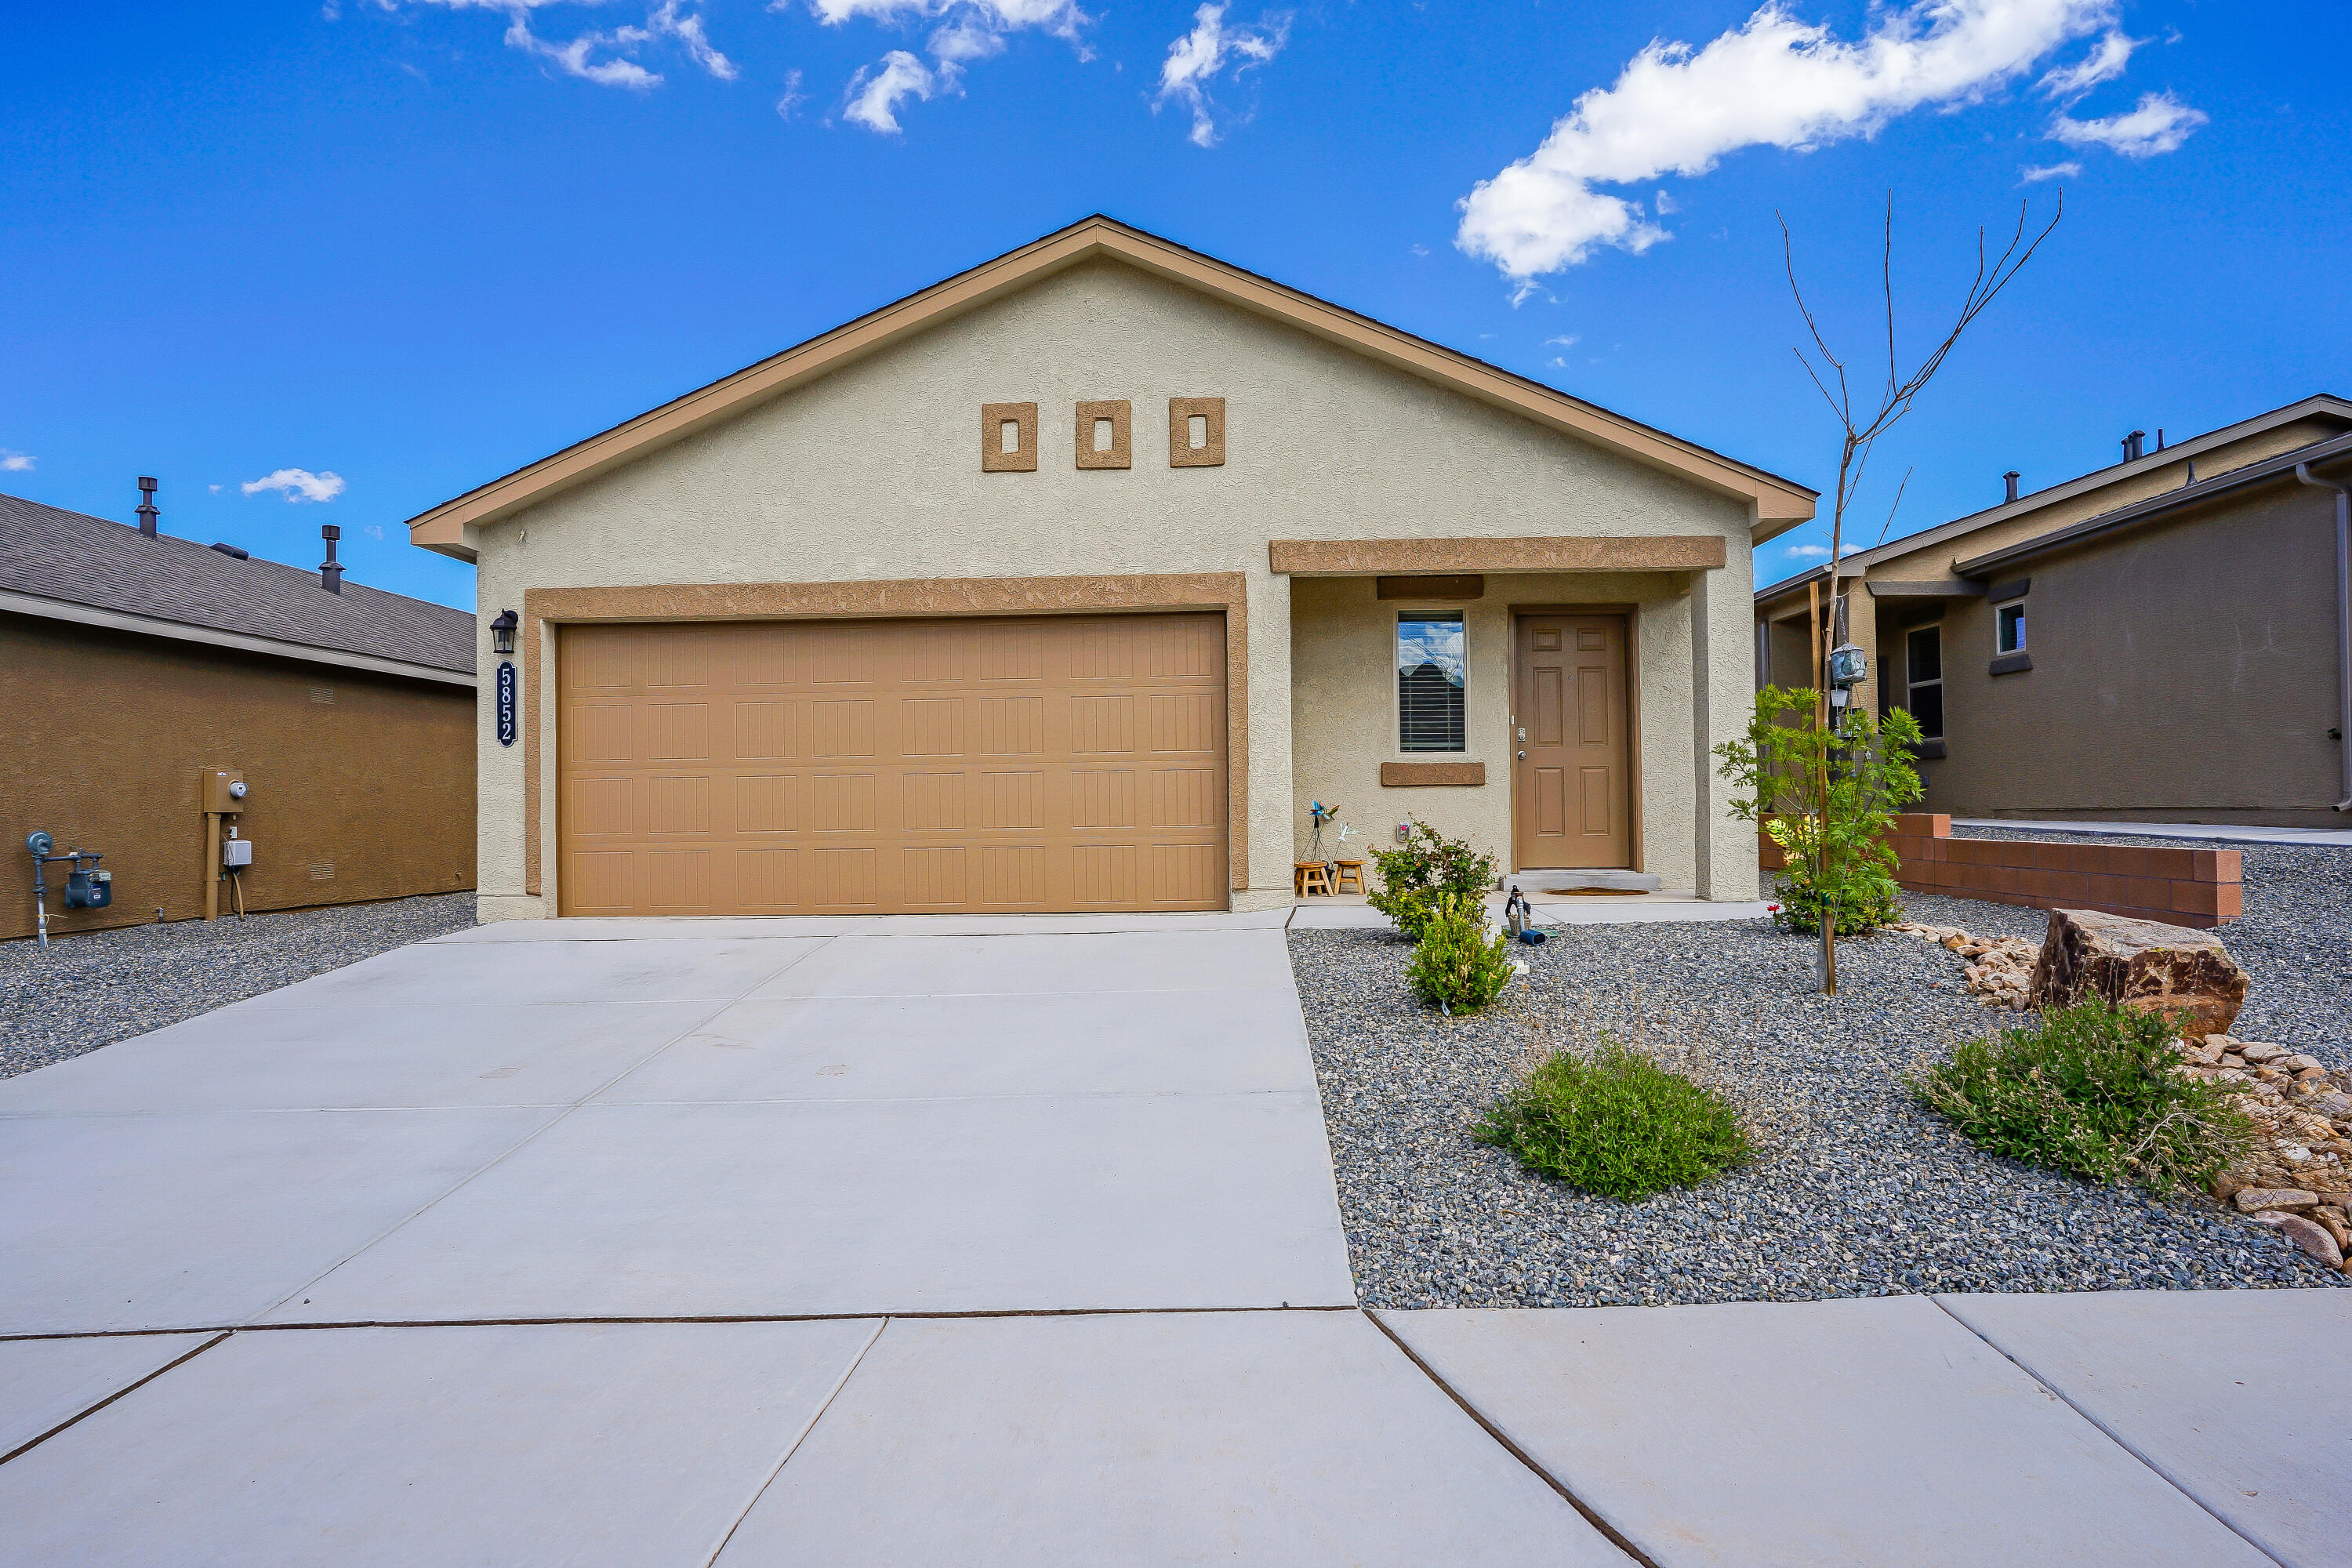 Come home and relax in this peaceful, quiet, Enchanted Hills neighborhood.  This 2019 Diana by D.R. Horton is a 3 bedroom, 2 bath, open  concept home with a private principal suite and bath, refrigerated air, a tankless water heater and it includes the Connected Home Package for added comfort and security.  It has a  low maintenance front yard and the backyard is ready for your touch.  Many warranties still apply, and all appliances will convey!